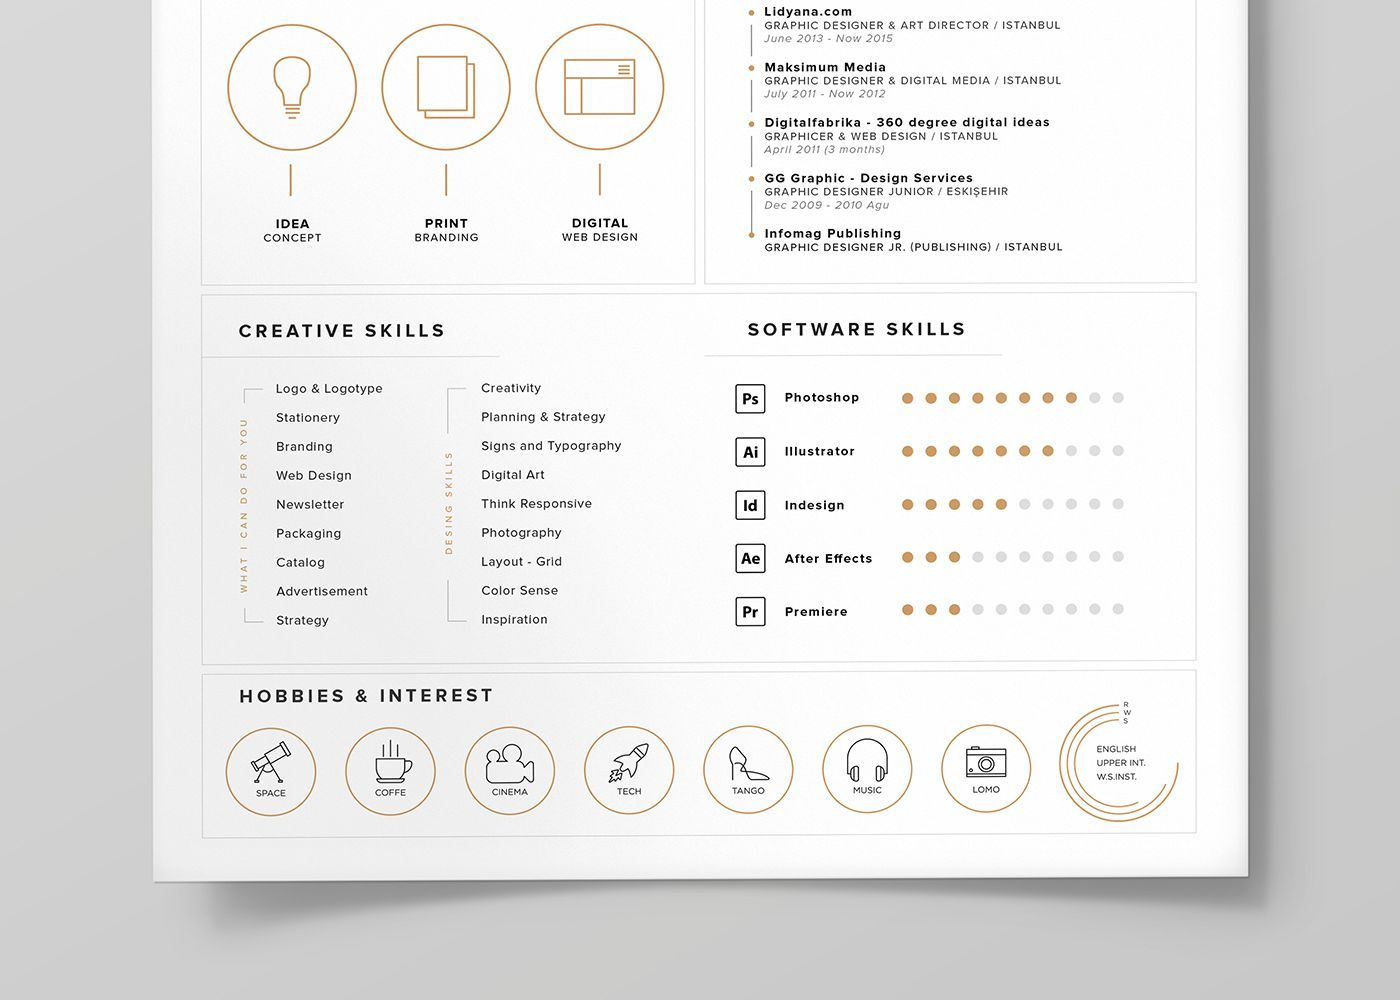 FREE Resume Template + Icons (Self Promotion) on Behance